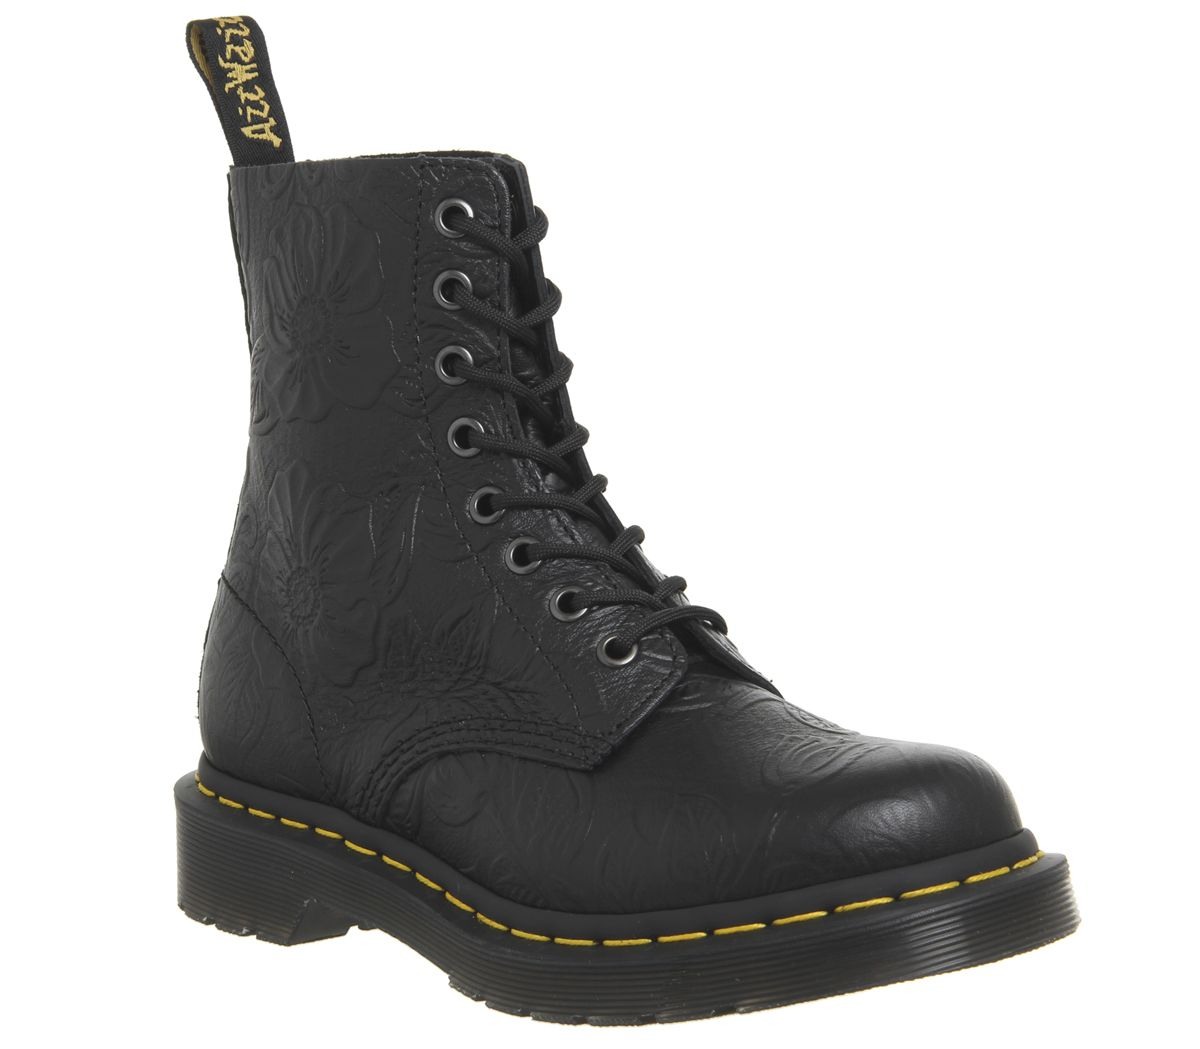 48b611d6955 8 Eyelet Lace Up Boots